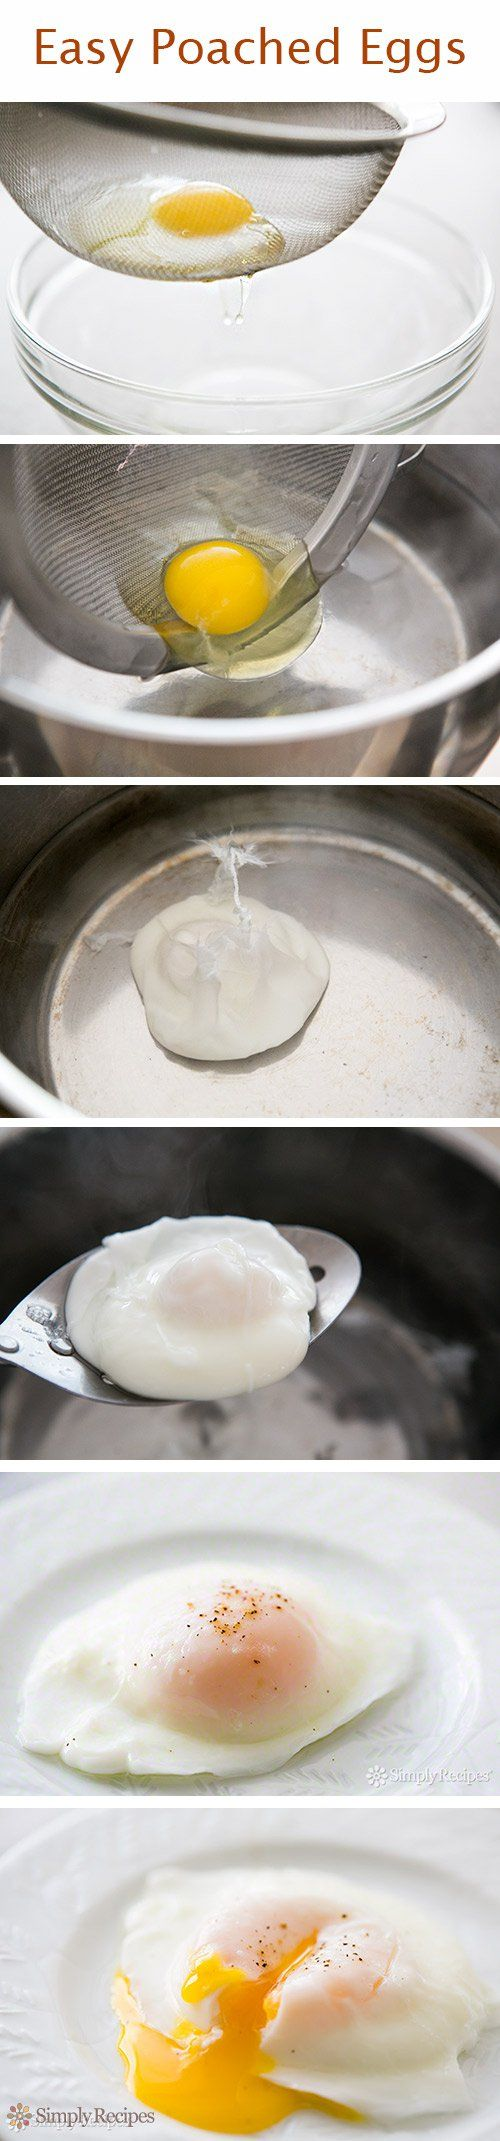 Easy poached eggs, Poached eggs and Eggs on Pinterest